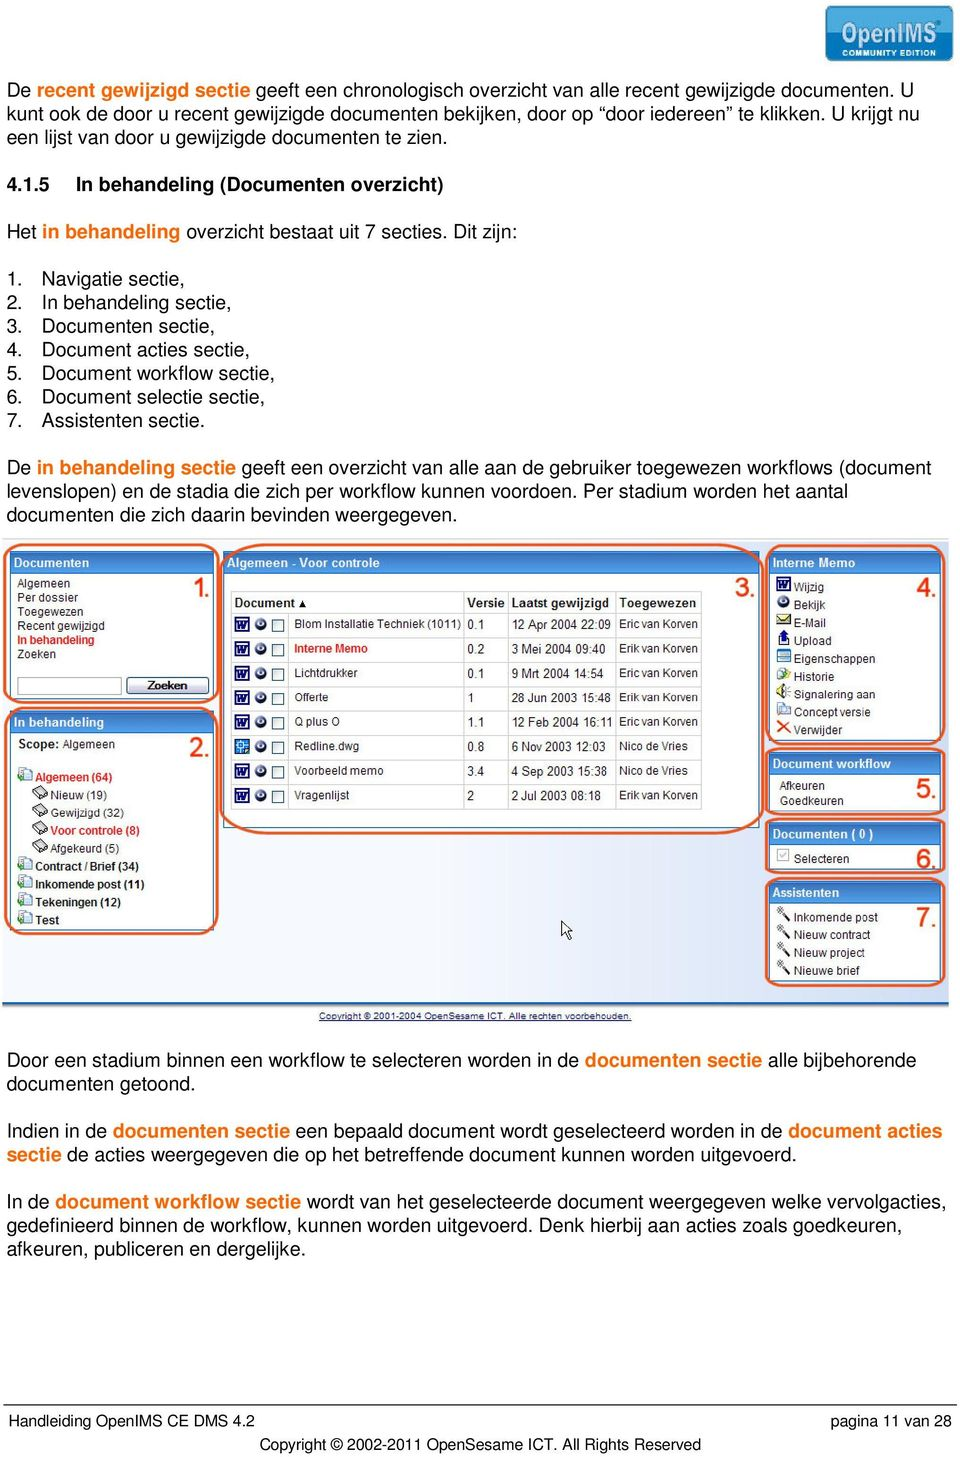 In behandeling sectie, 3. Documenten sectie, 4. Document acties sectie, 5. Document workflow sectie, 6. Document selectie sectie, 7. Assistenten sectie.